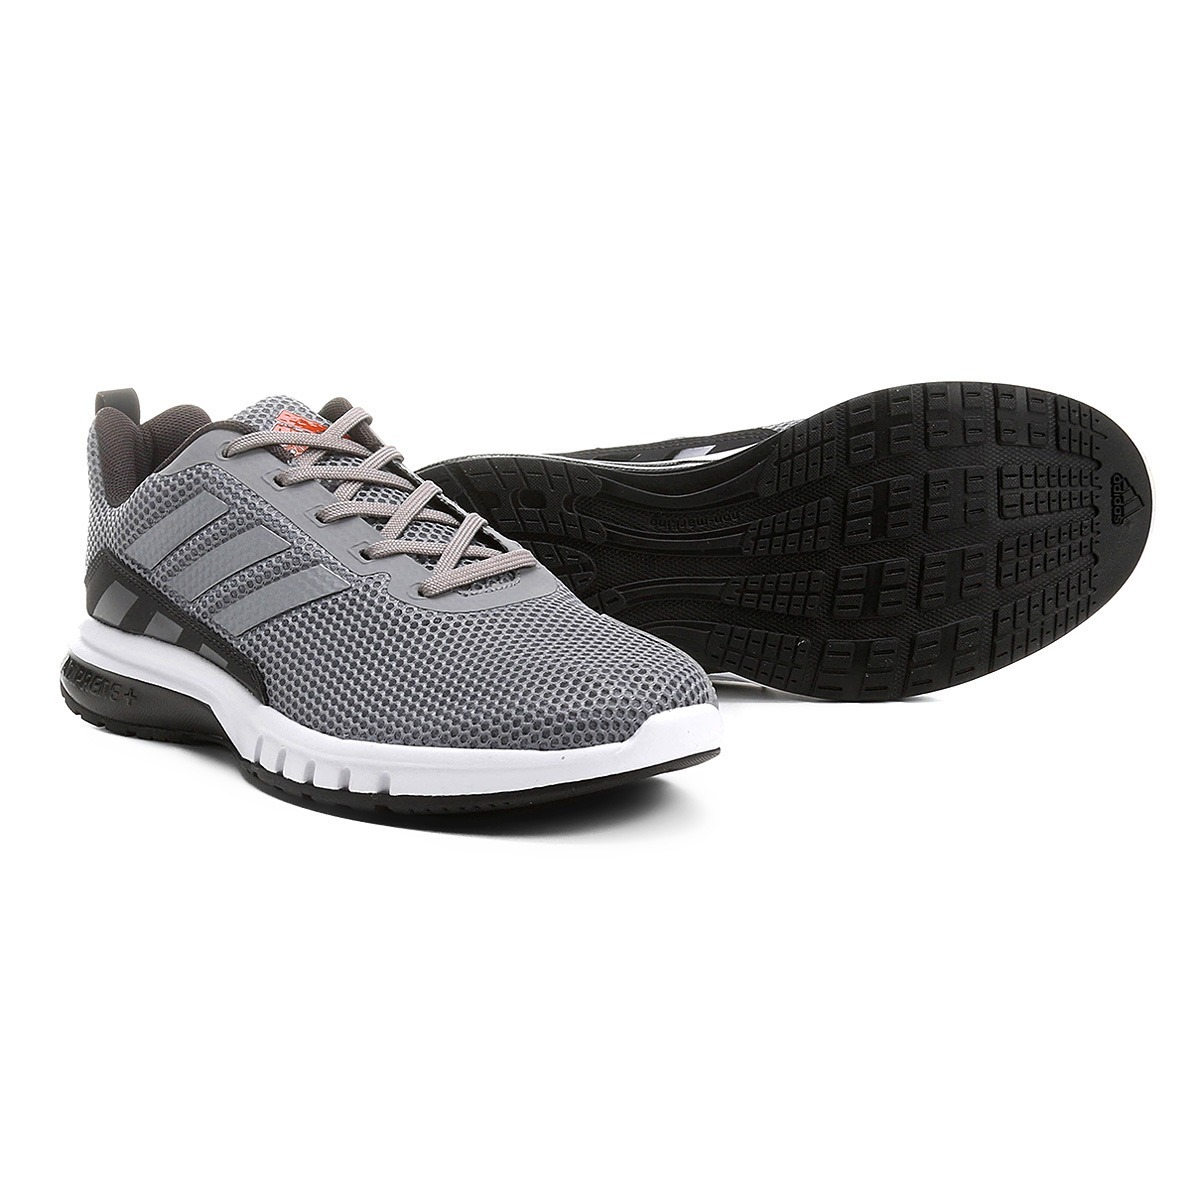 ... tênis adidas skyrocket masculino running. Carregando zoom. wholesale  outlet fb25f 823eb ... 7c3a6a1928b5a